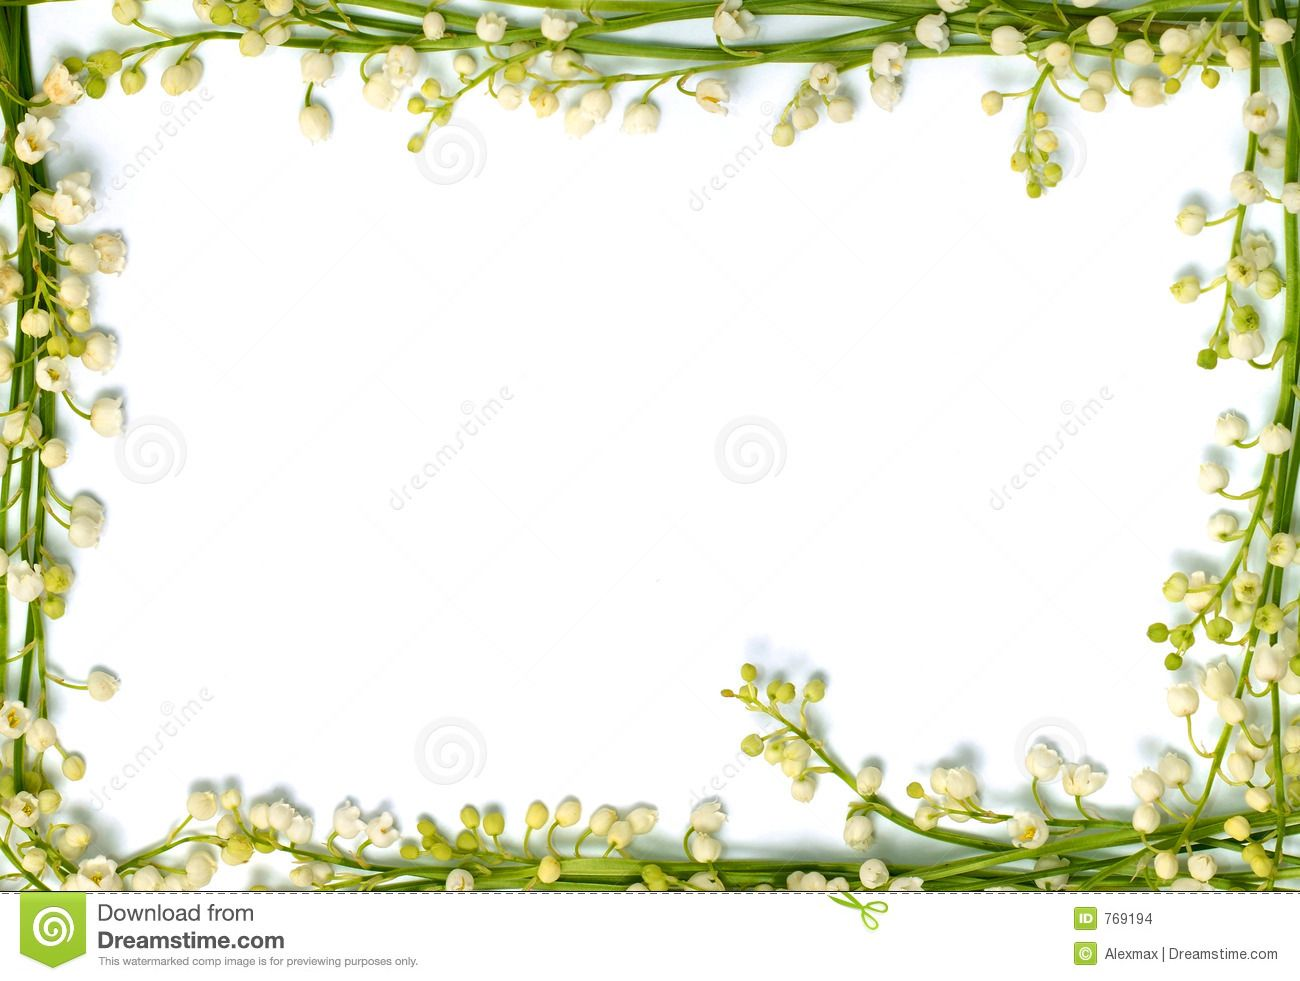 Lily Of The Valley Flowers On Paper Frame Border Isolated Horizo